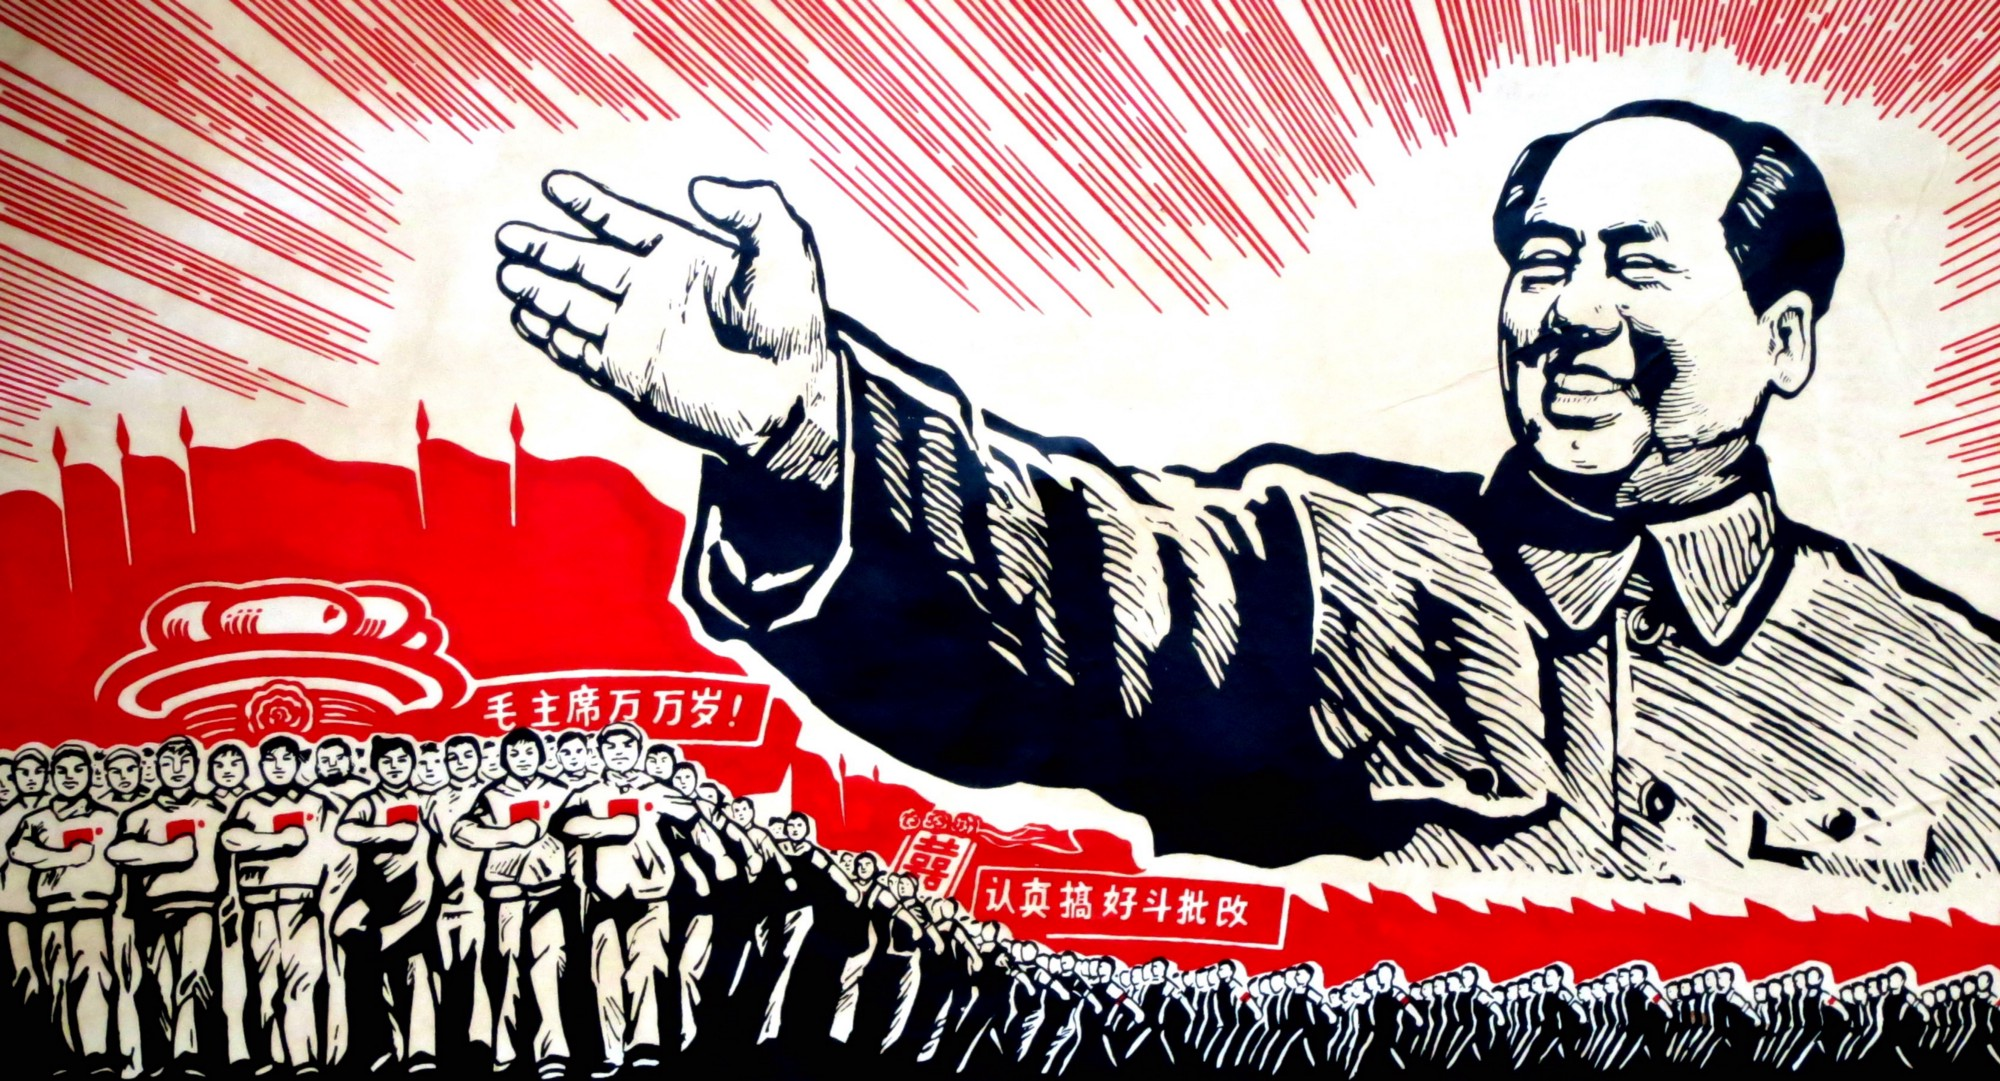 the origins of the cultural revolution Earlier series titled the origins of the cultural revolution, (the first volume was published by columbia university press in 1974, the second in 1983, and the third in 1997), macfarquhar described the history of chinese high politics from 1956, when.